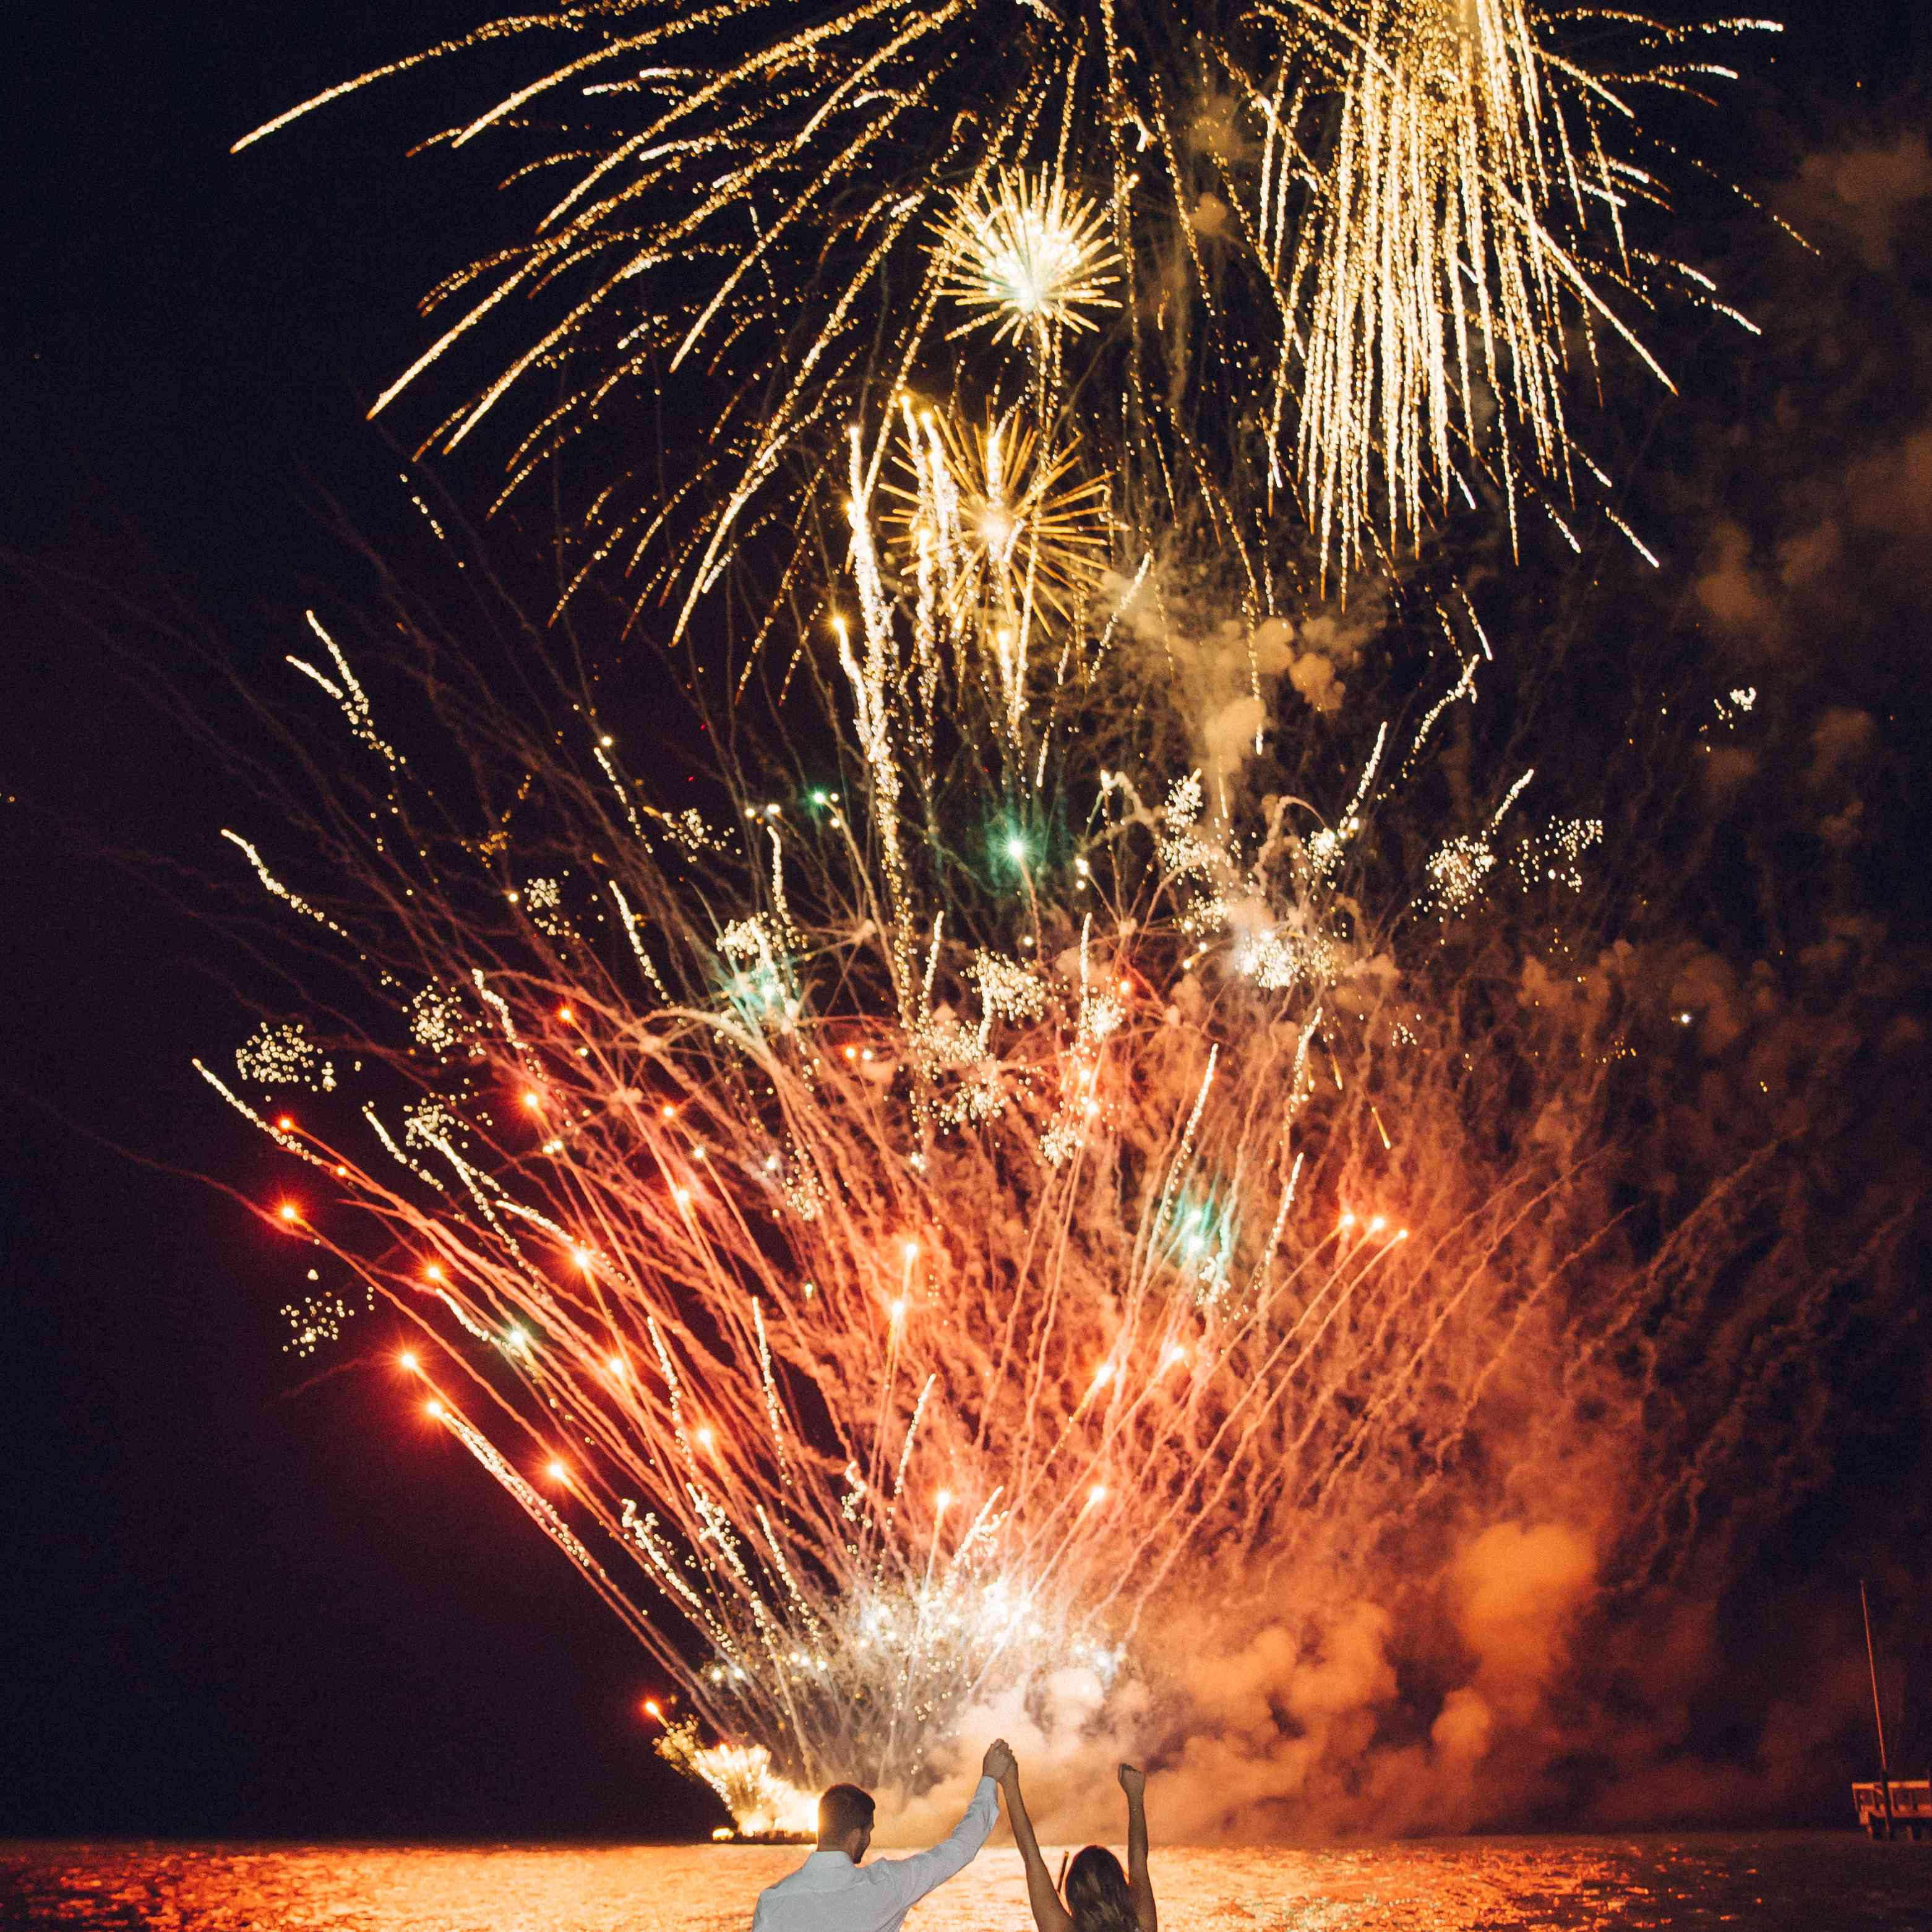 Bride and groom in front of fireworks